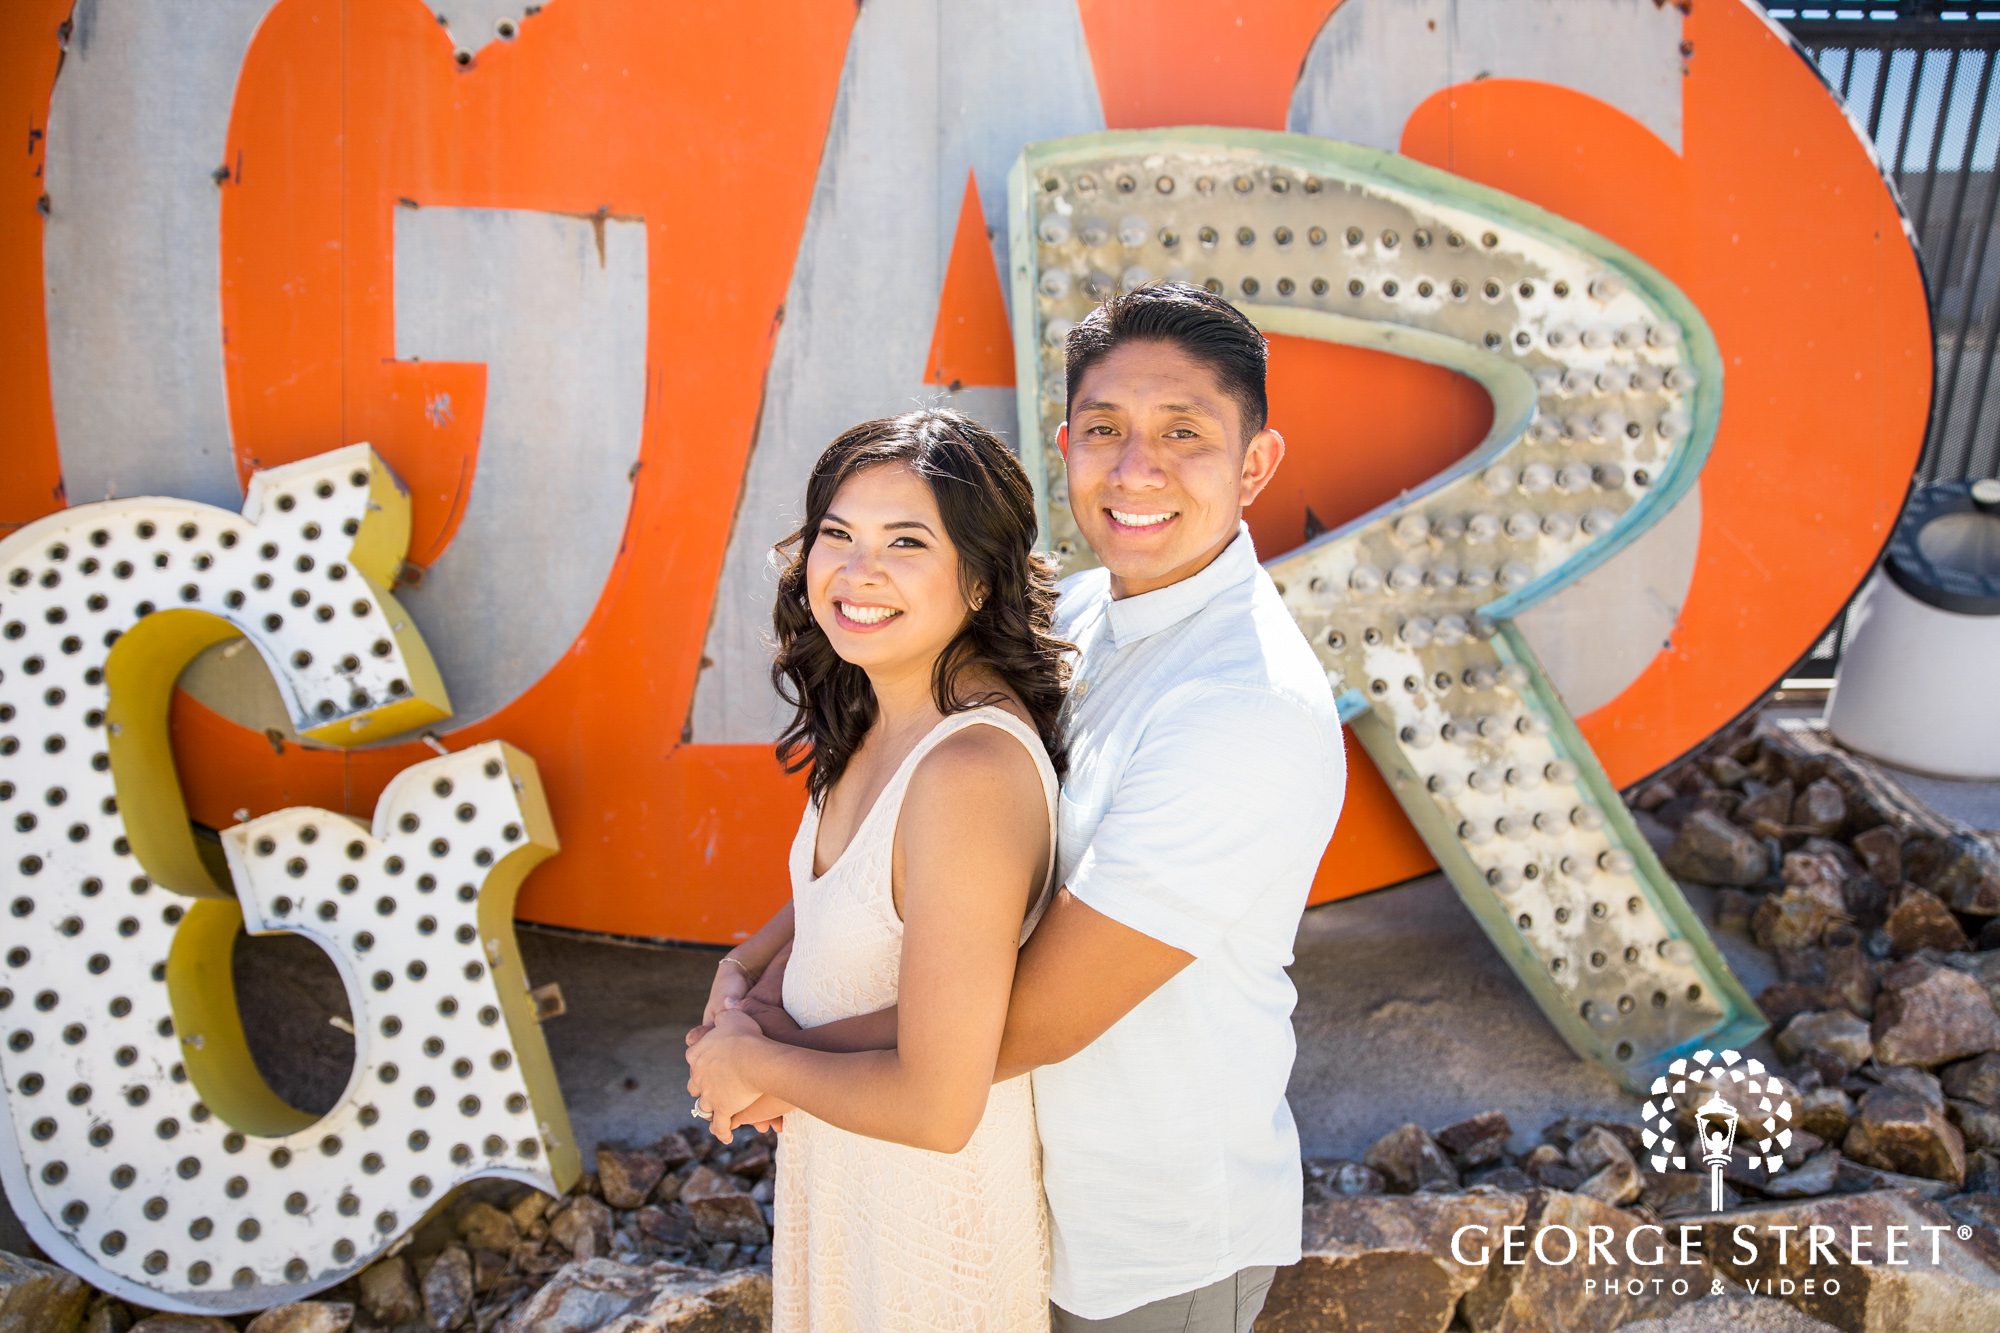 las vegas neon signs engagement photography 6